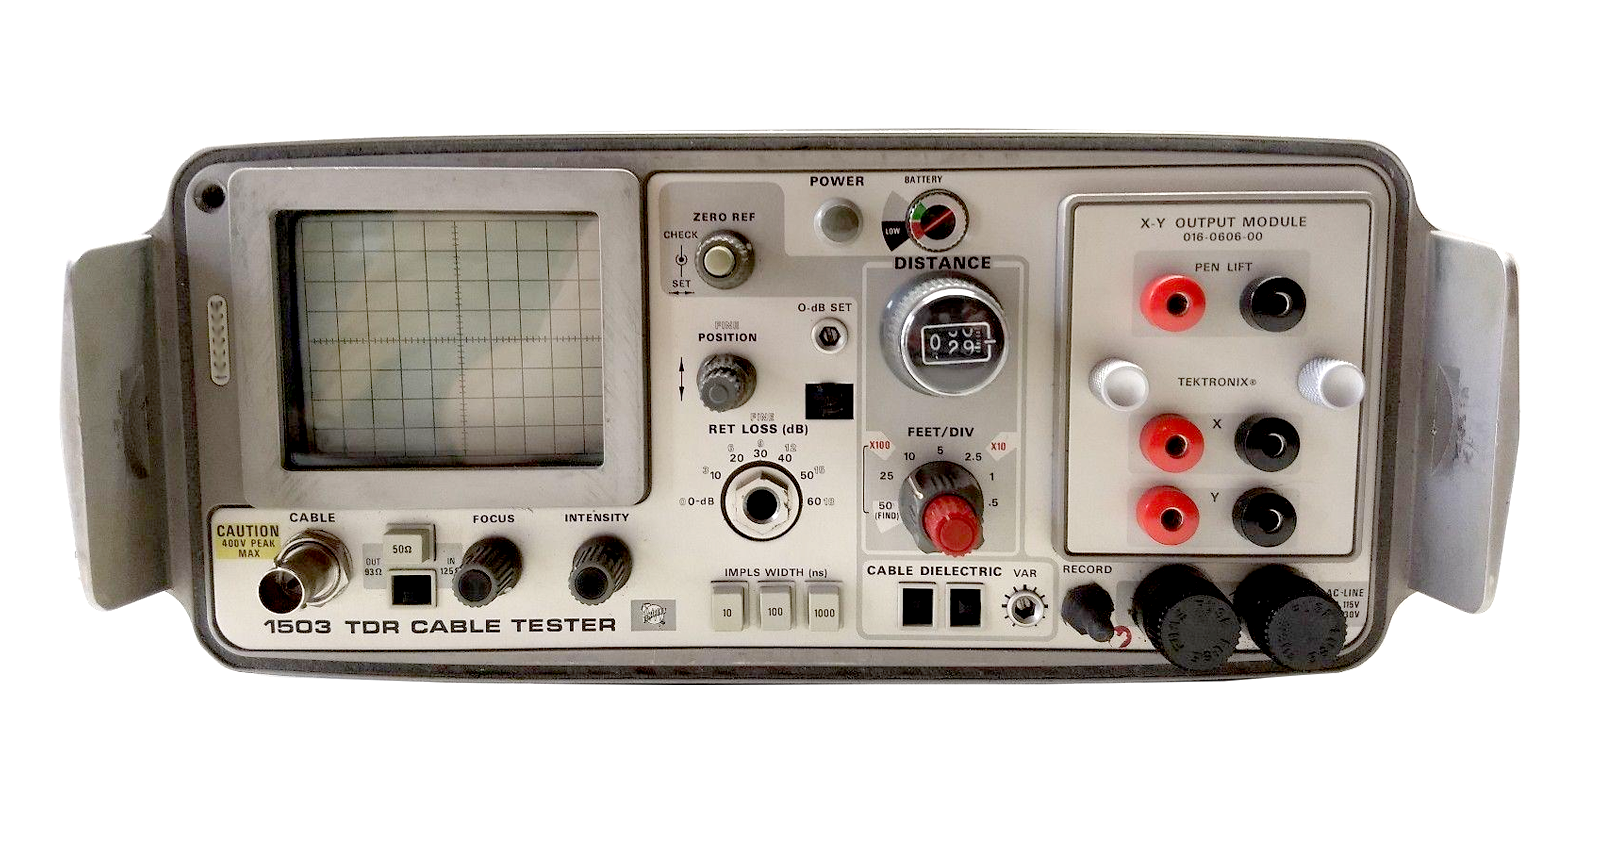 Tektronix 1503 TDR Time Domain Reflectometer Cable Tester